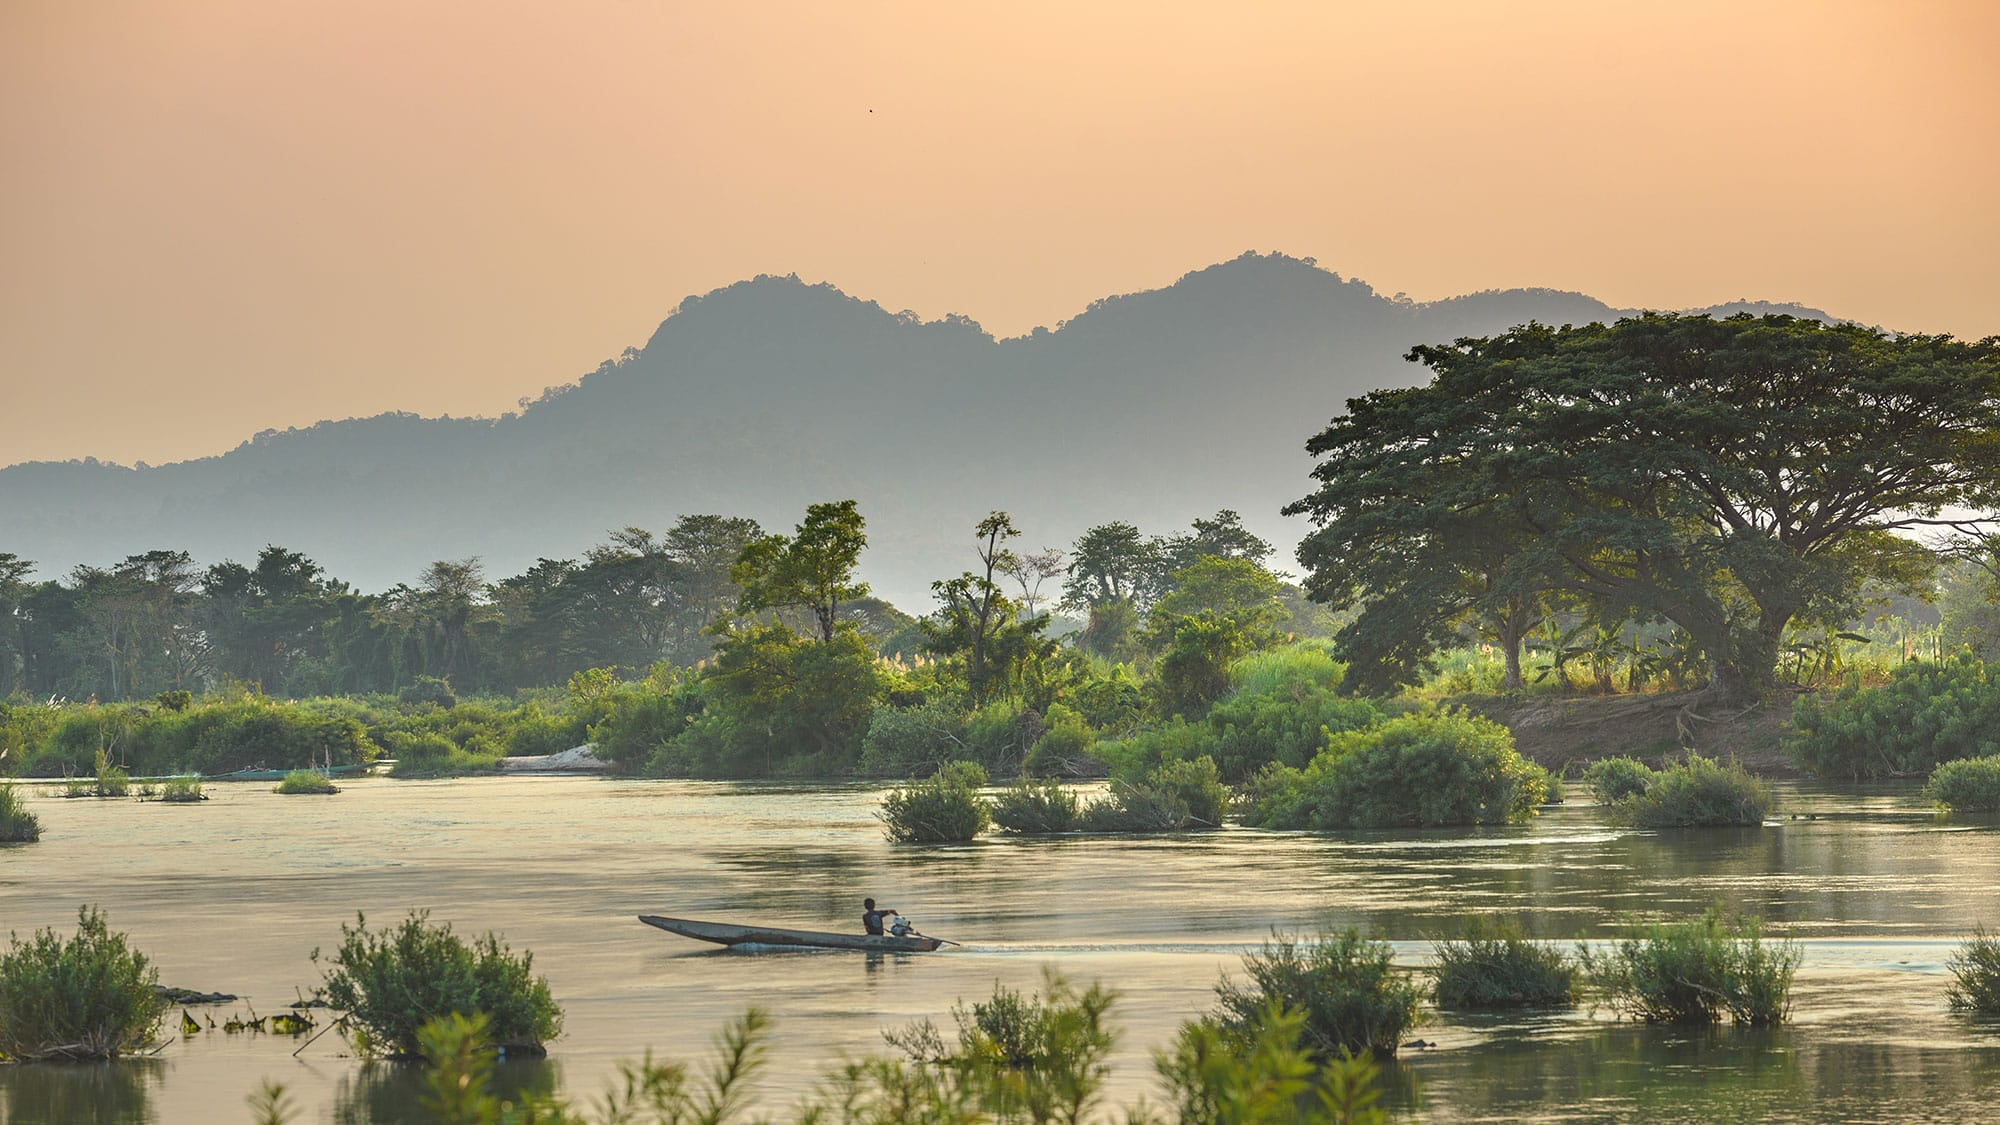 4000 islands river and mountain view in Laos